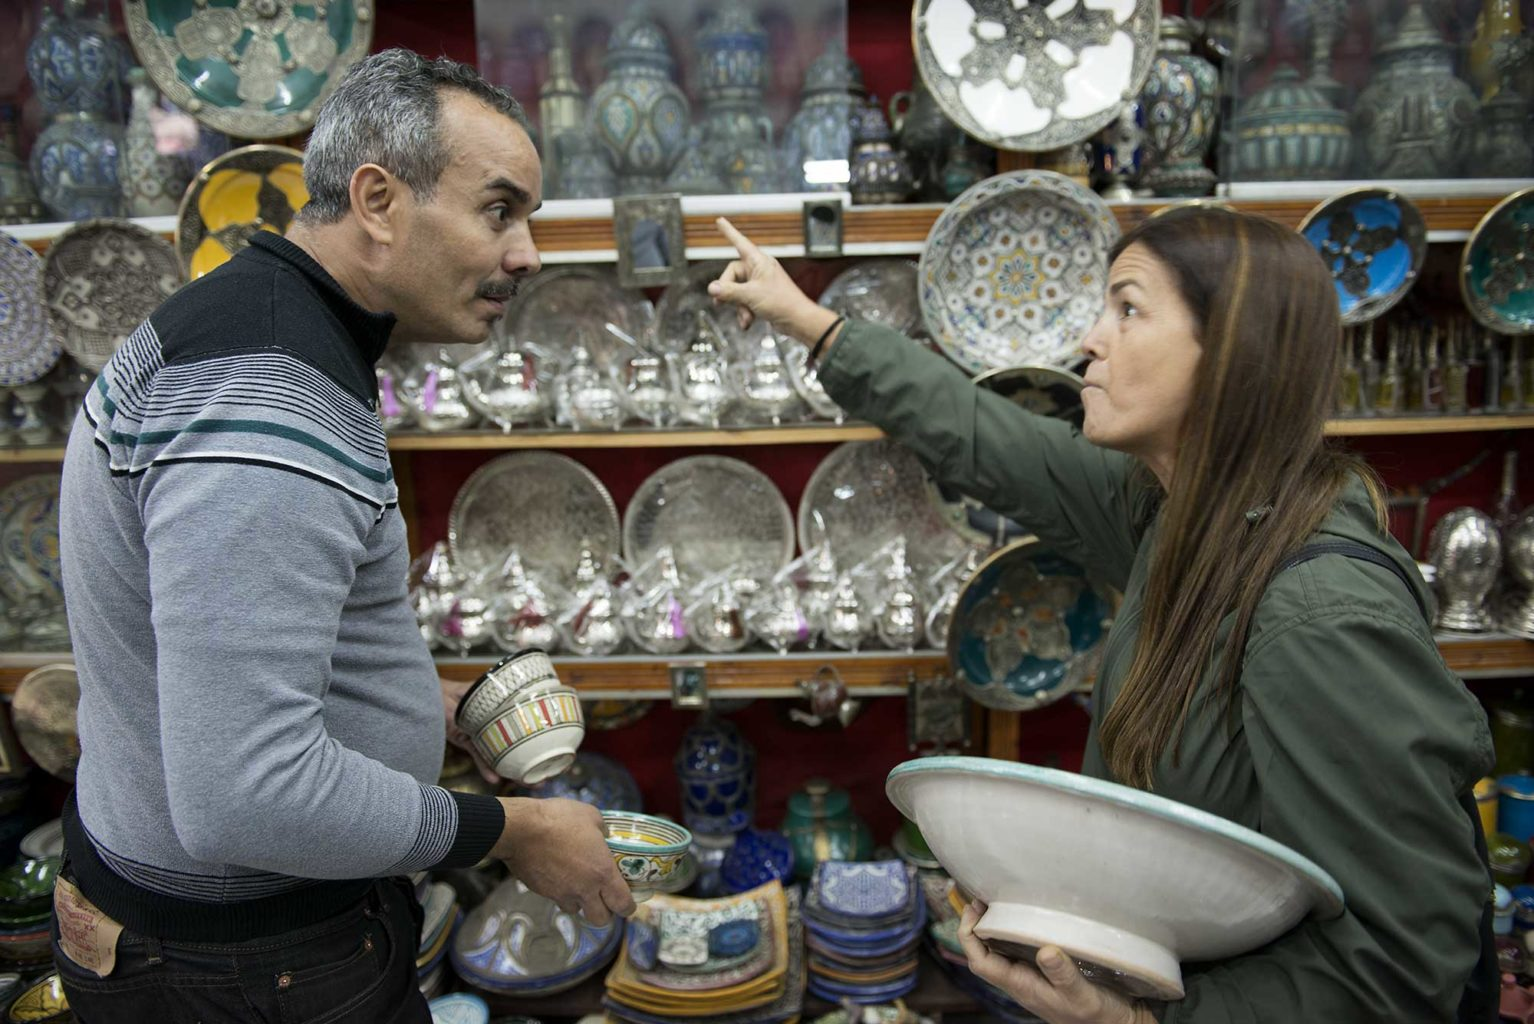 Arguing before buying is necessary in Morocco